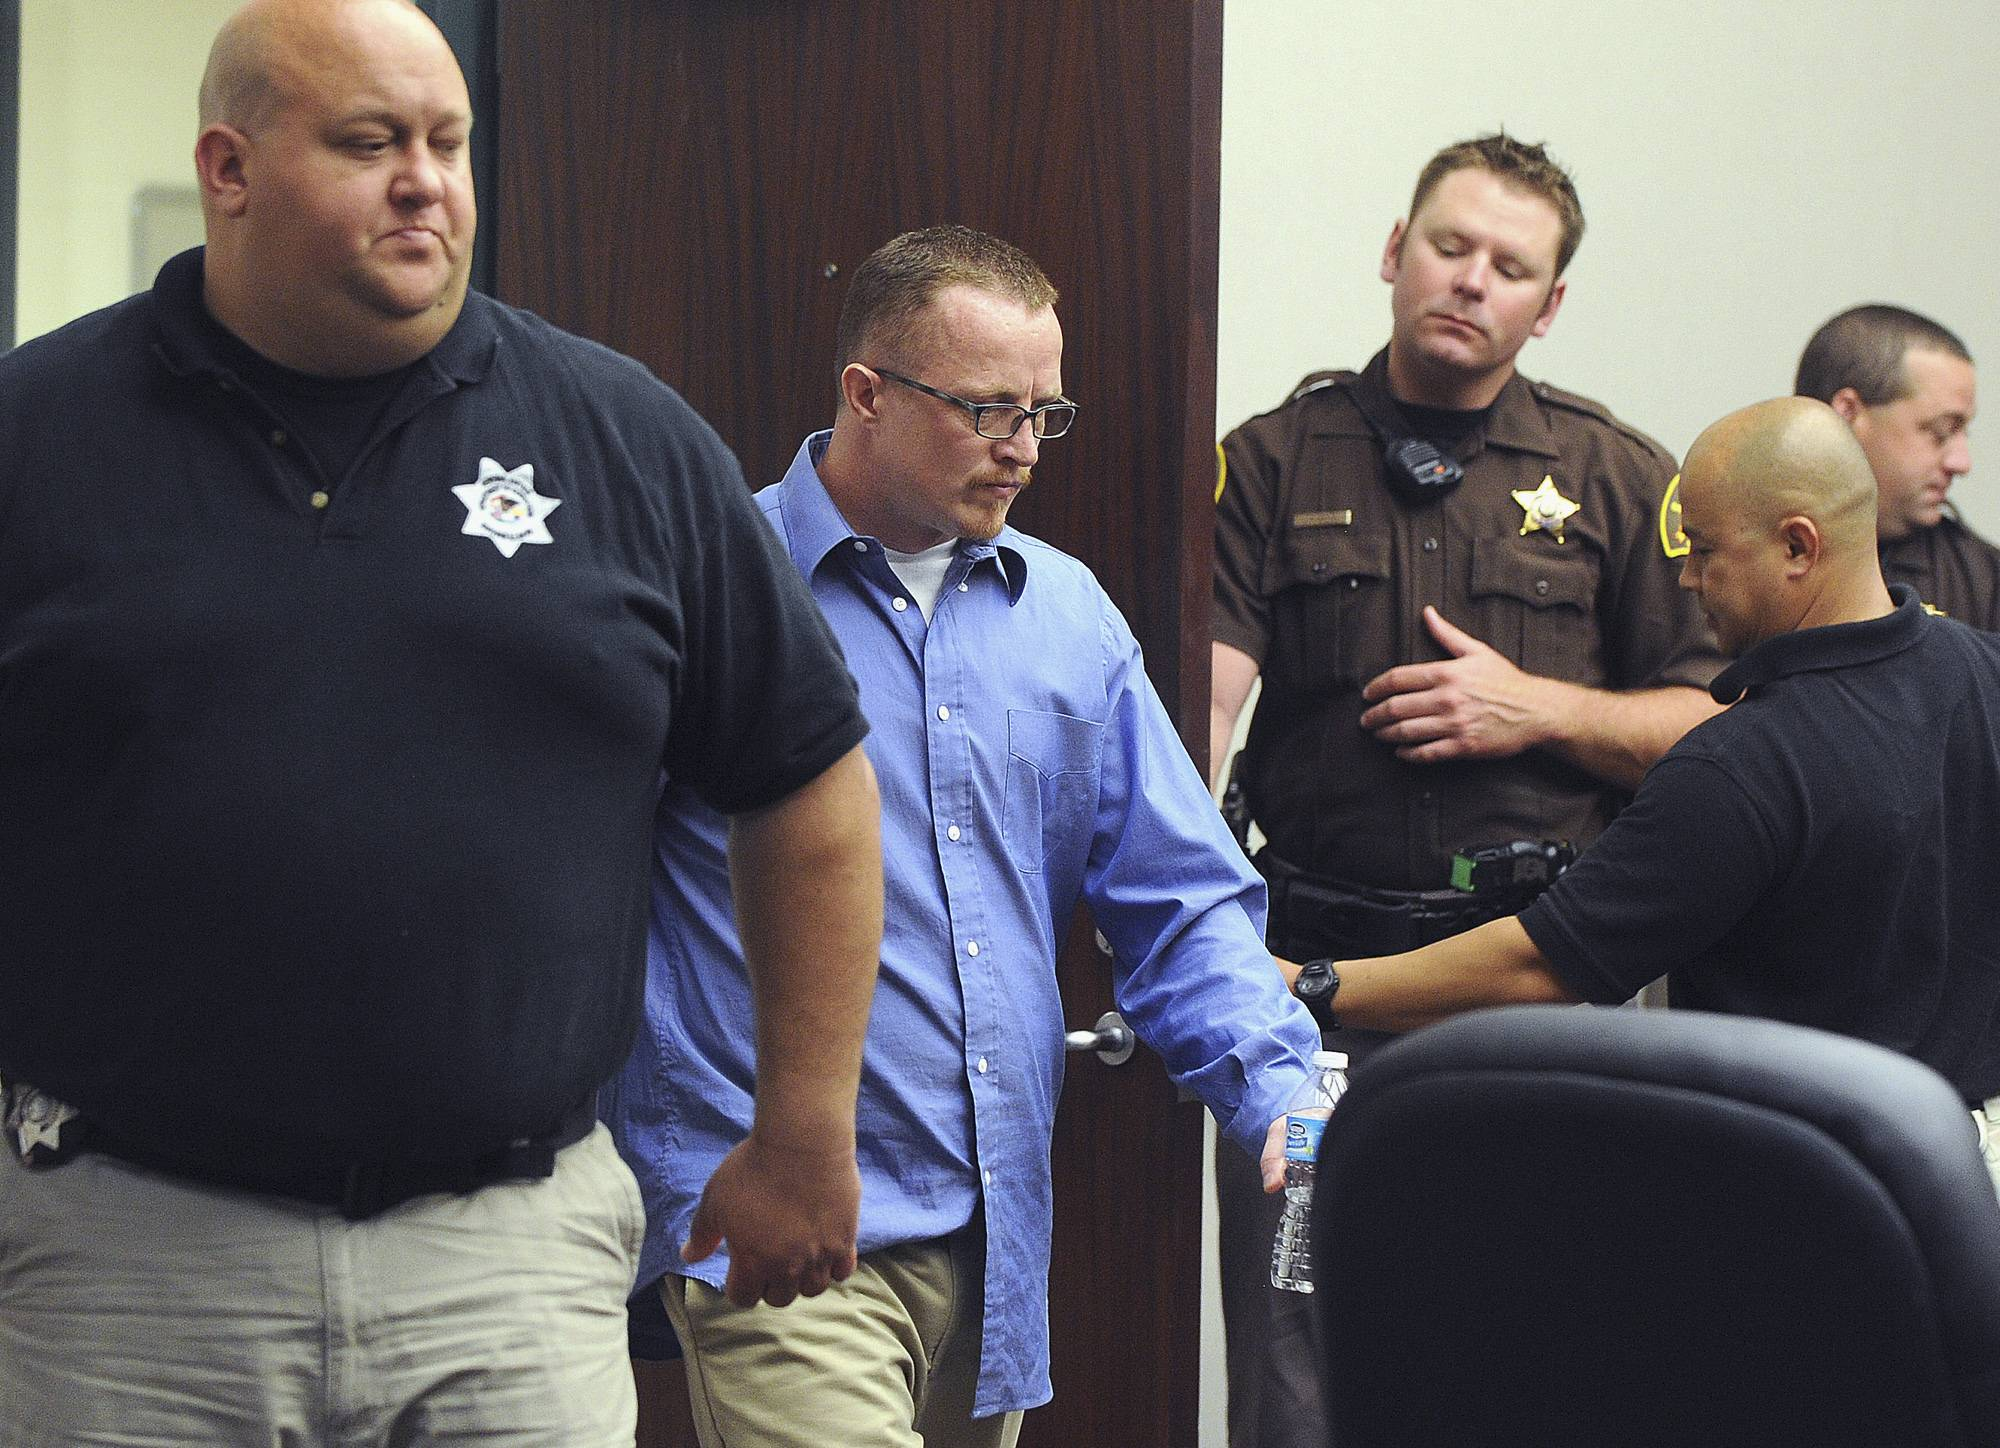 Nicholas Sheley is escorted into the courtroom during the third day of his trial at the Rock Island County Justice Center Wednesday.